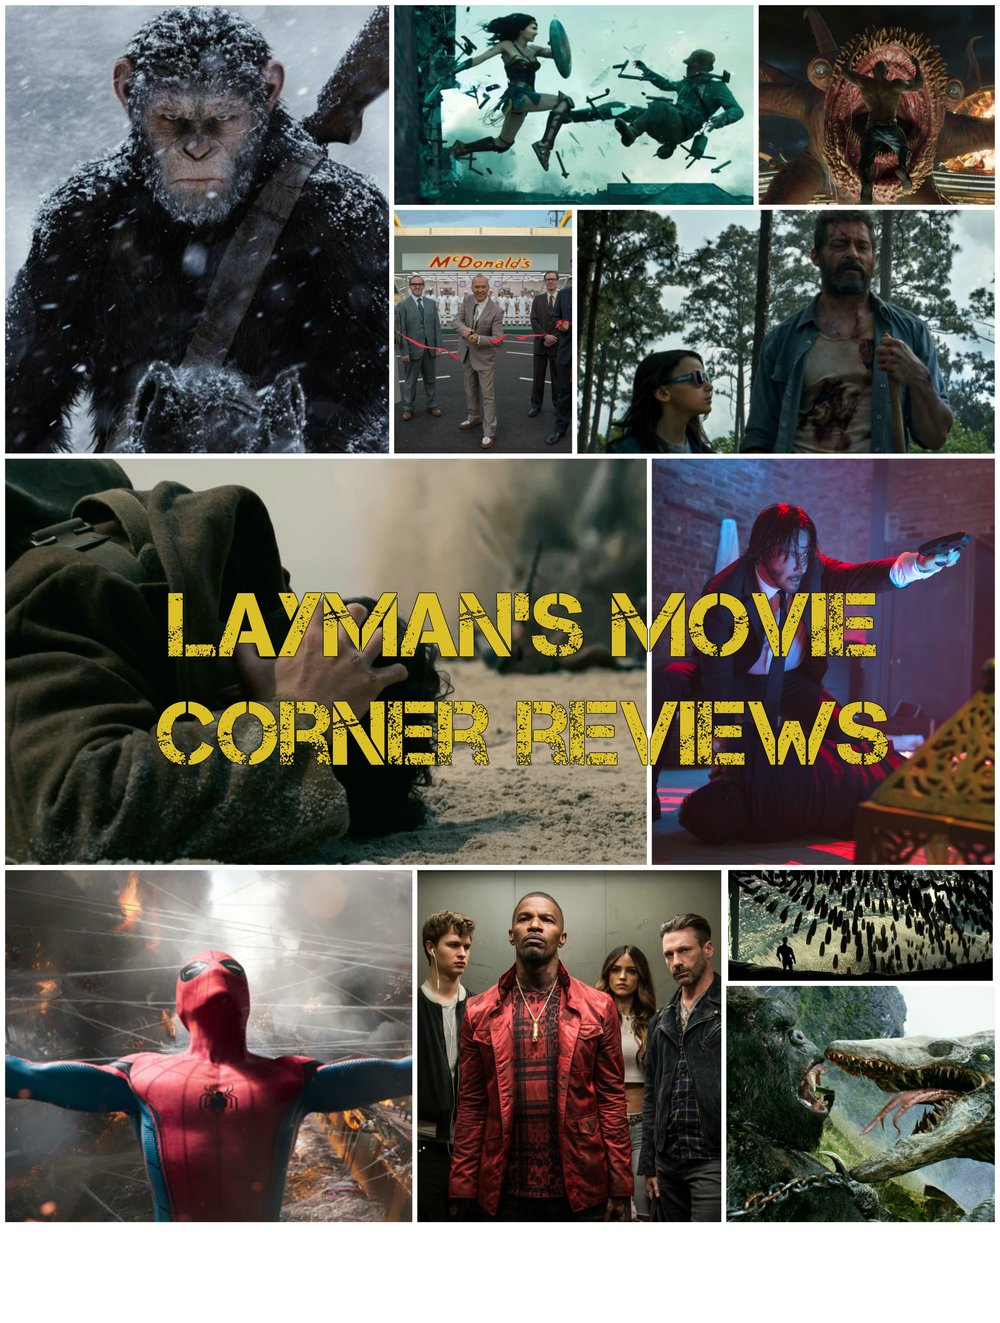 Layman's Movie Corner Reviews pic (23JUL17).jpg